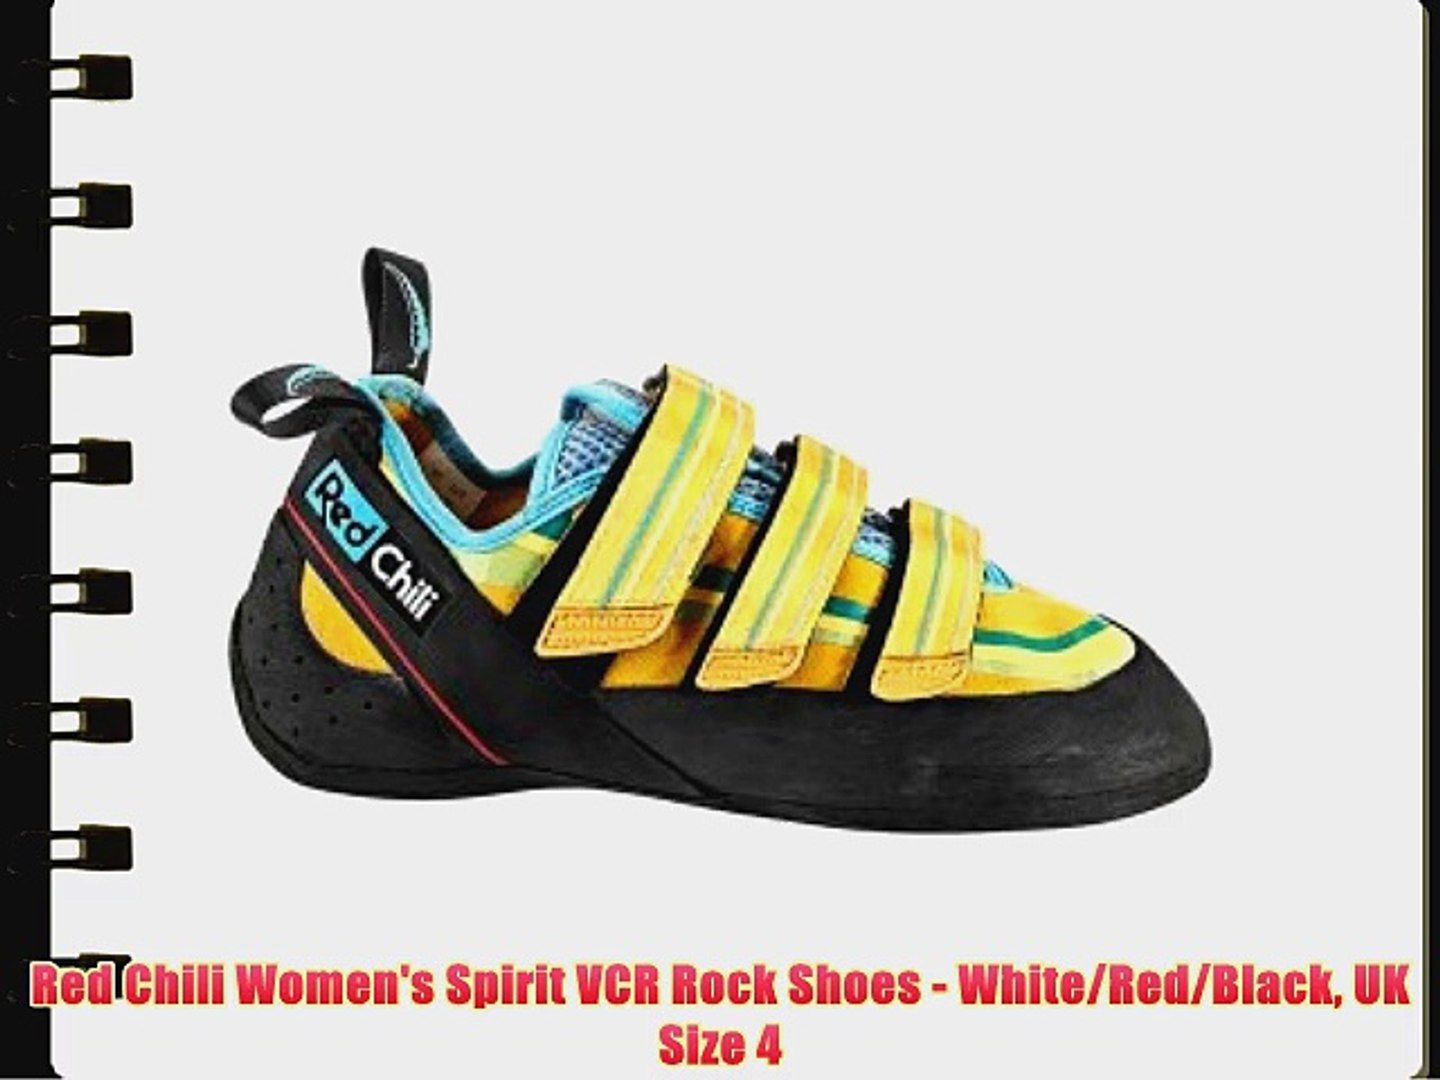 Red Chili Women's Spirit VCR Rock Shoes - White/Red/Black UK Size 4